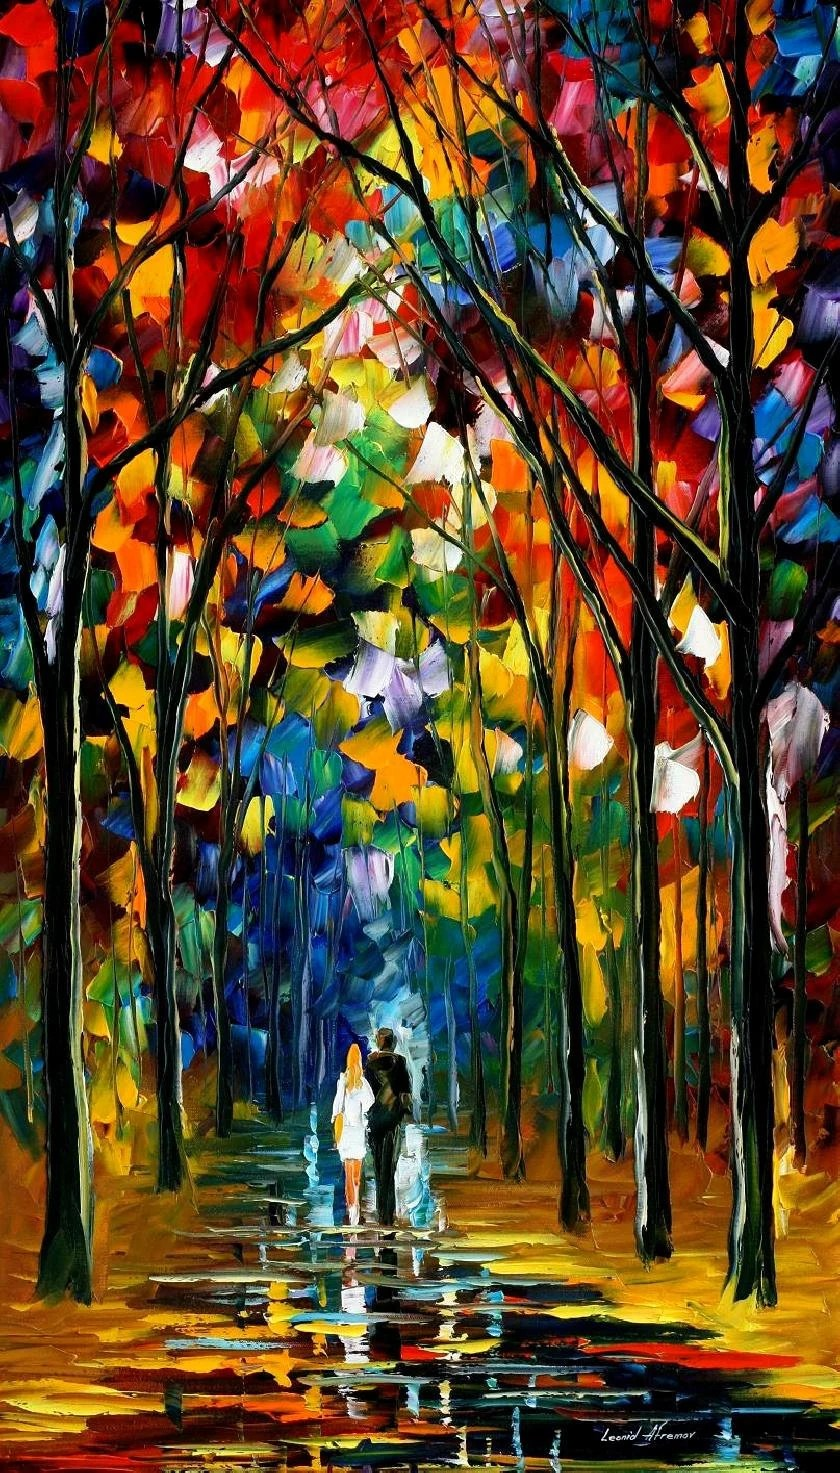 Wall Paintings For Sale Cheap Paintings For Sale Great Wall Art By Leonid Afremov Love Vibrations Size 20